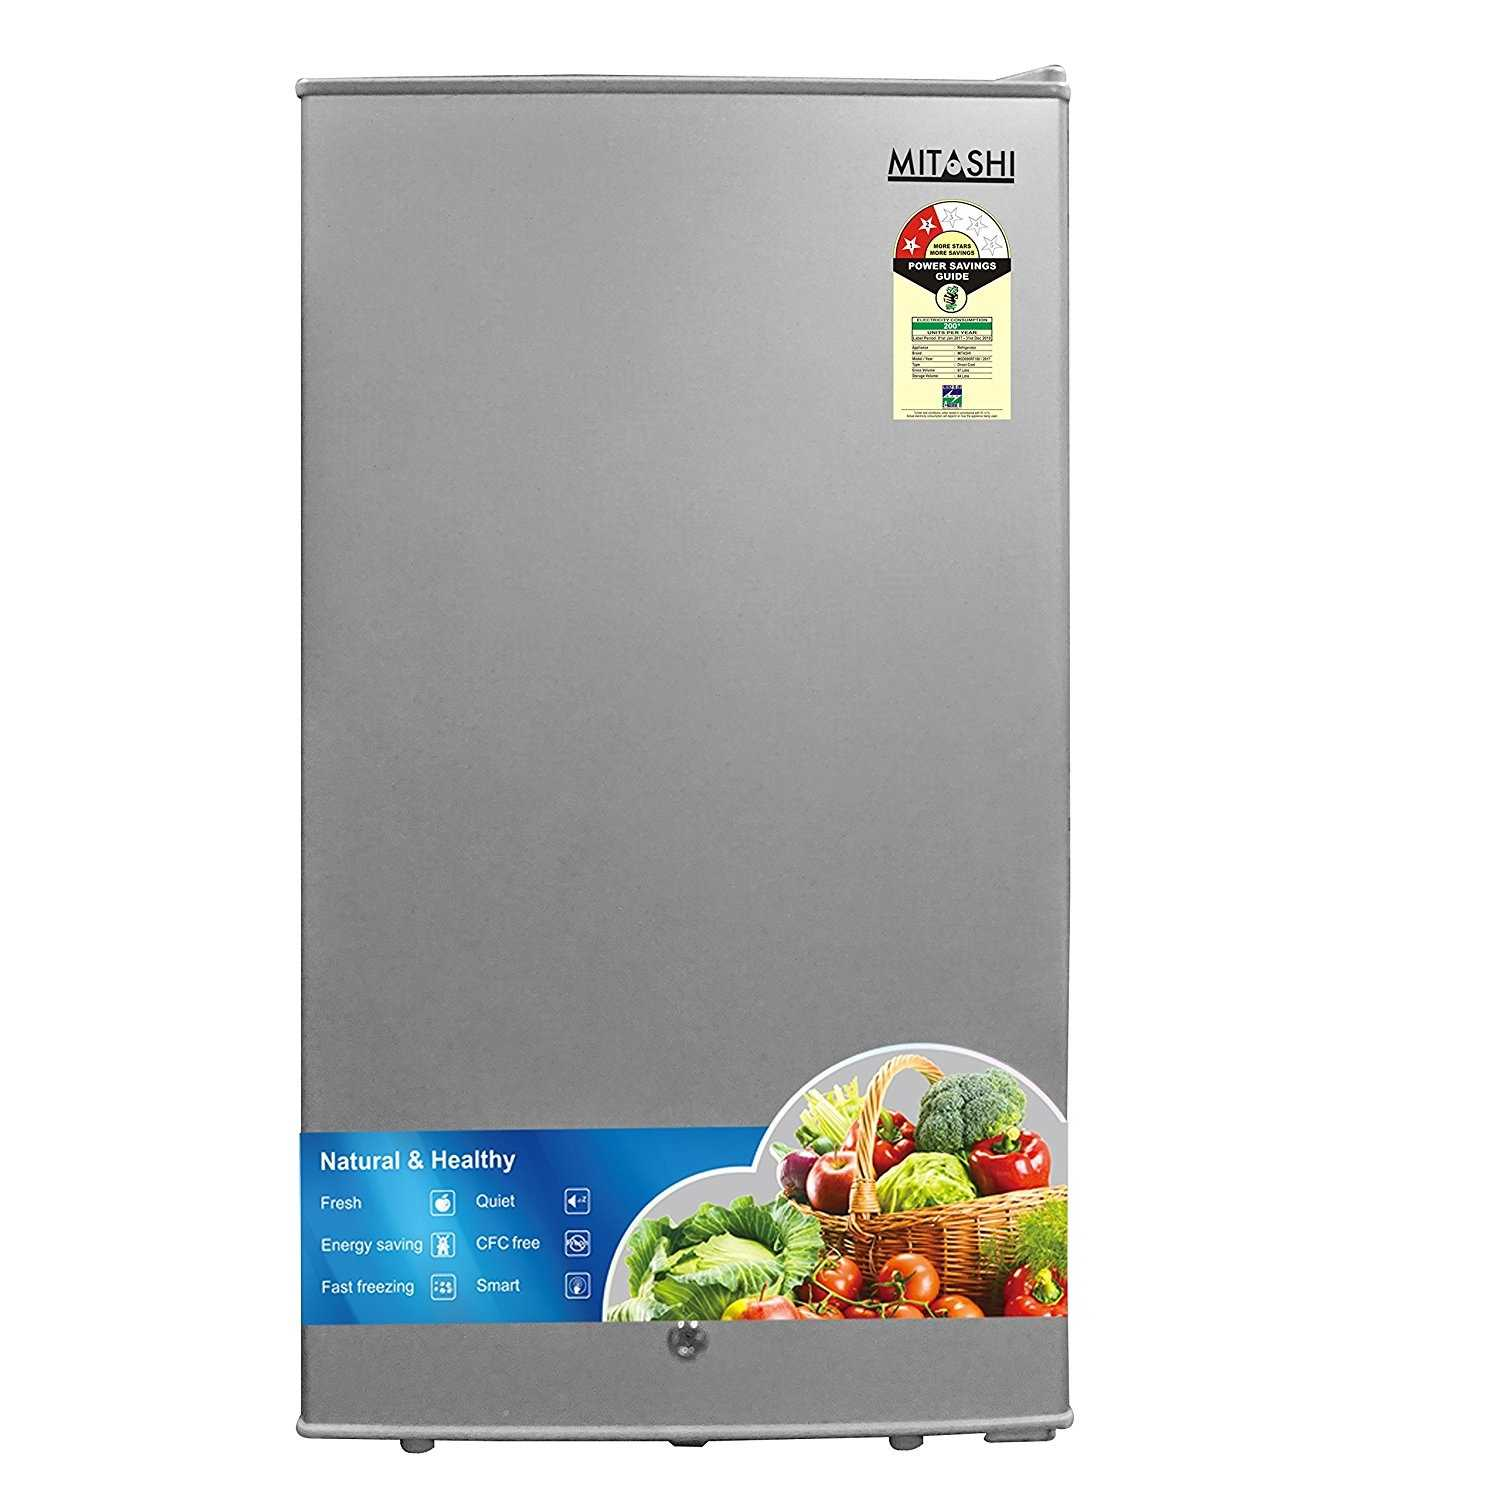 Mitashi MSD090RF100 87 Litres 2 star Direct Cool Single Door Refrigerator